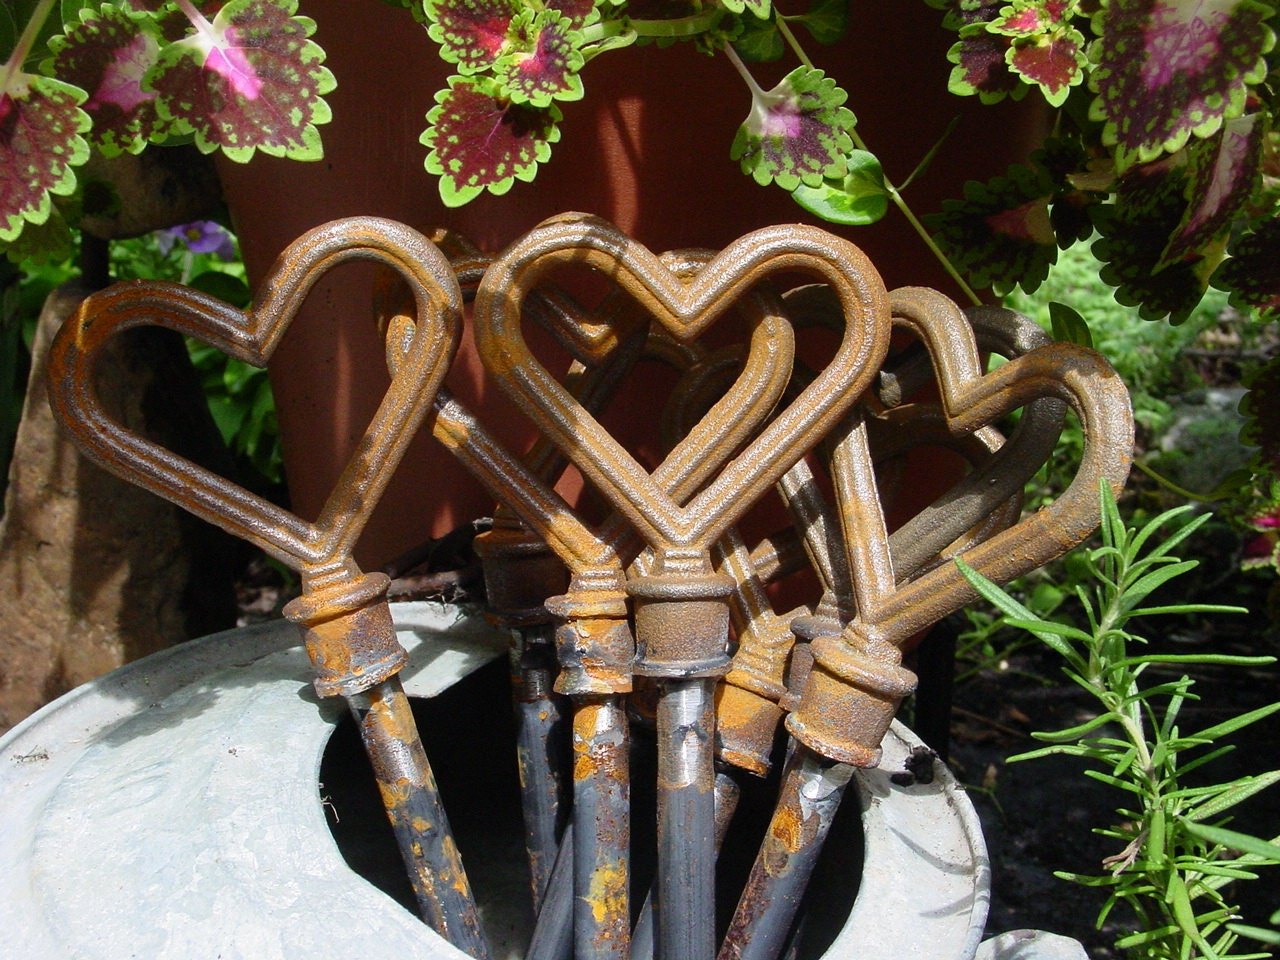 Eight Heart Hose Guides Cast Iron welded to Steel for the